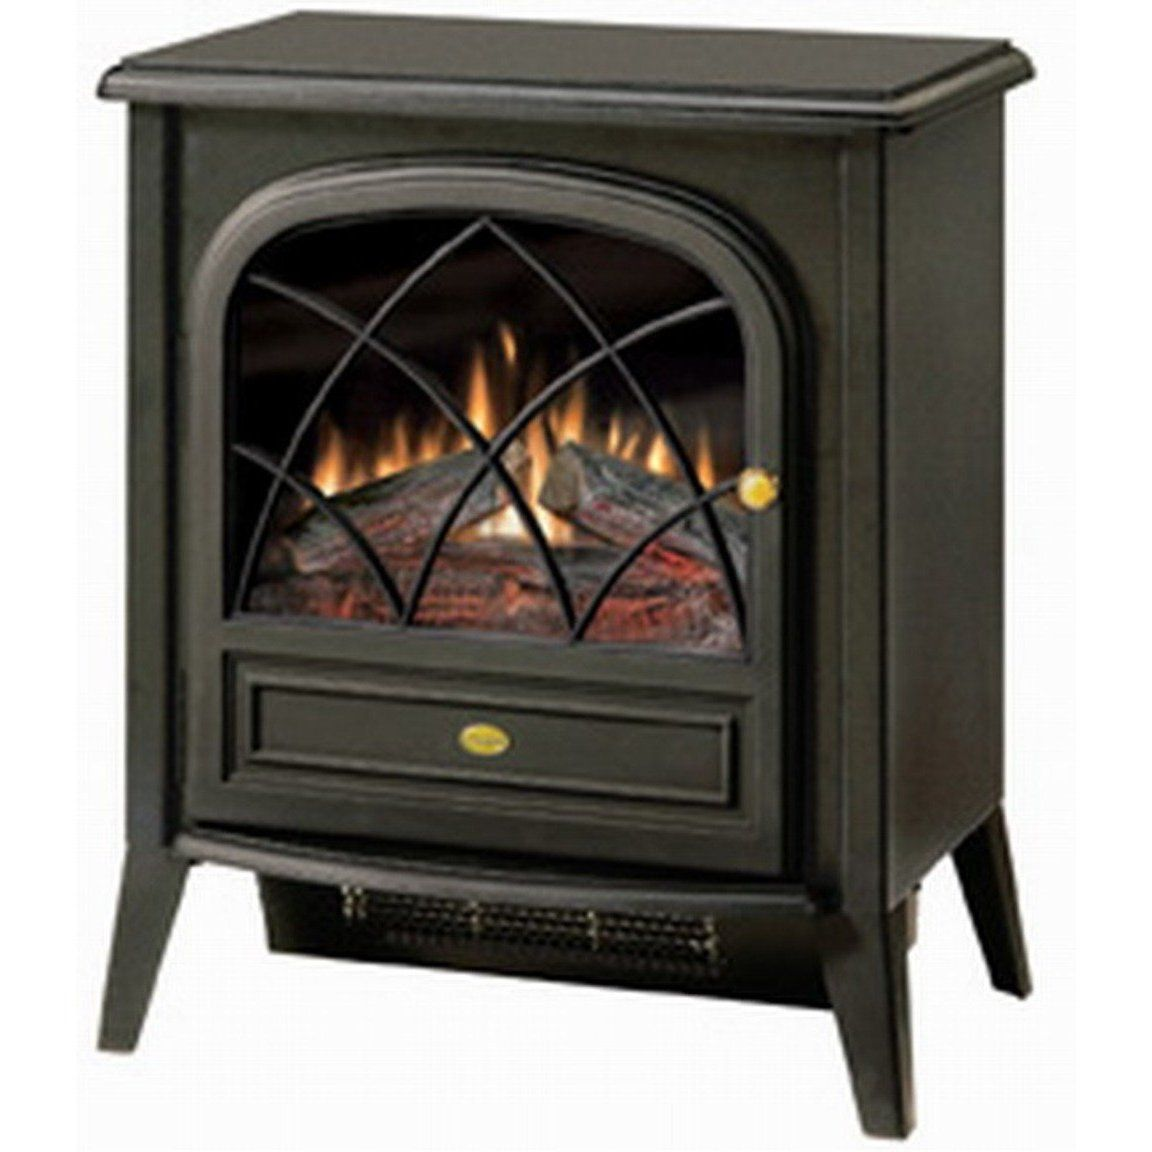 Electralog Electric Fireplace Manual | Stove Controls A. Main on/off switch  1.